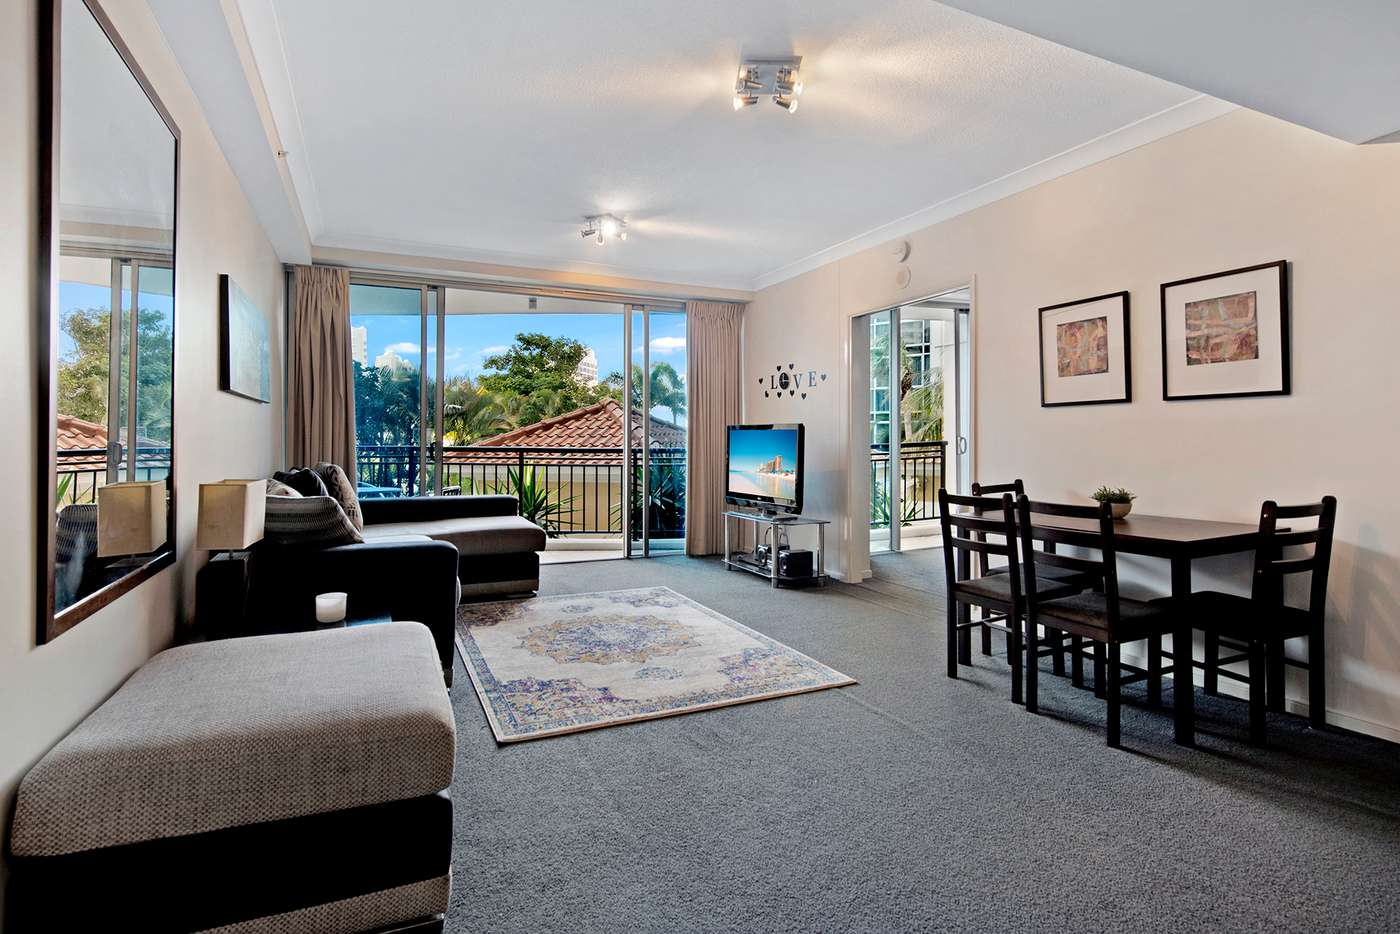 Main view of Homely apartment listing, 3065/23 Ferny Avenue, Surfers Paradise QLD 4217